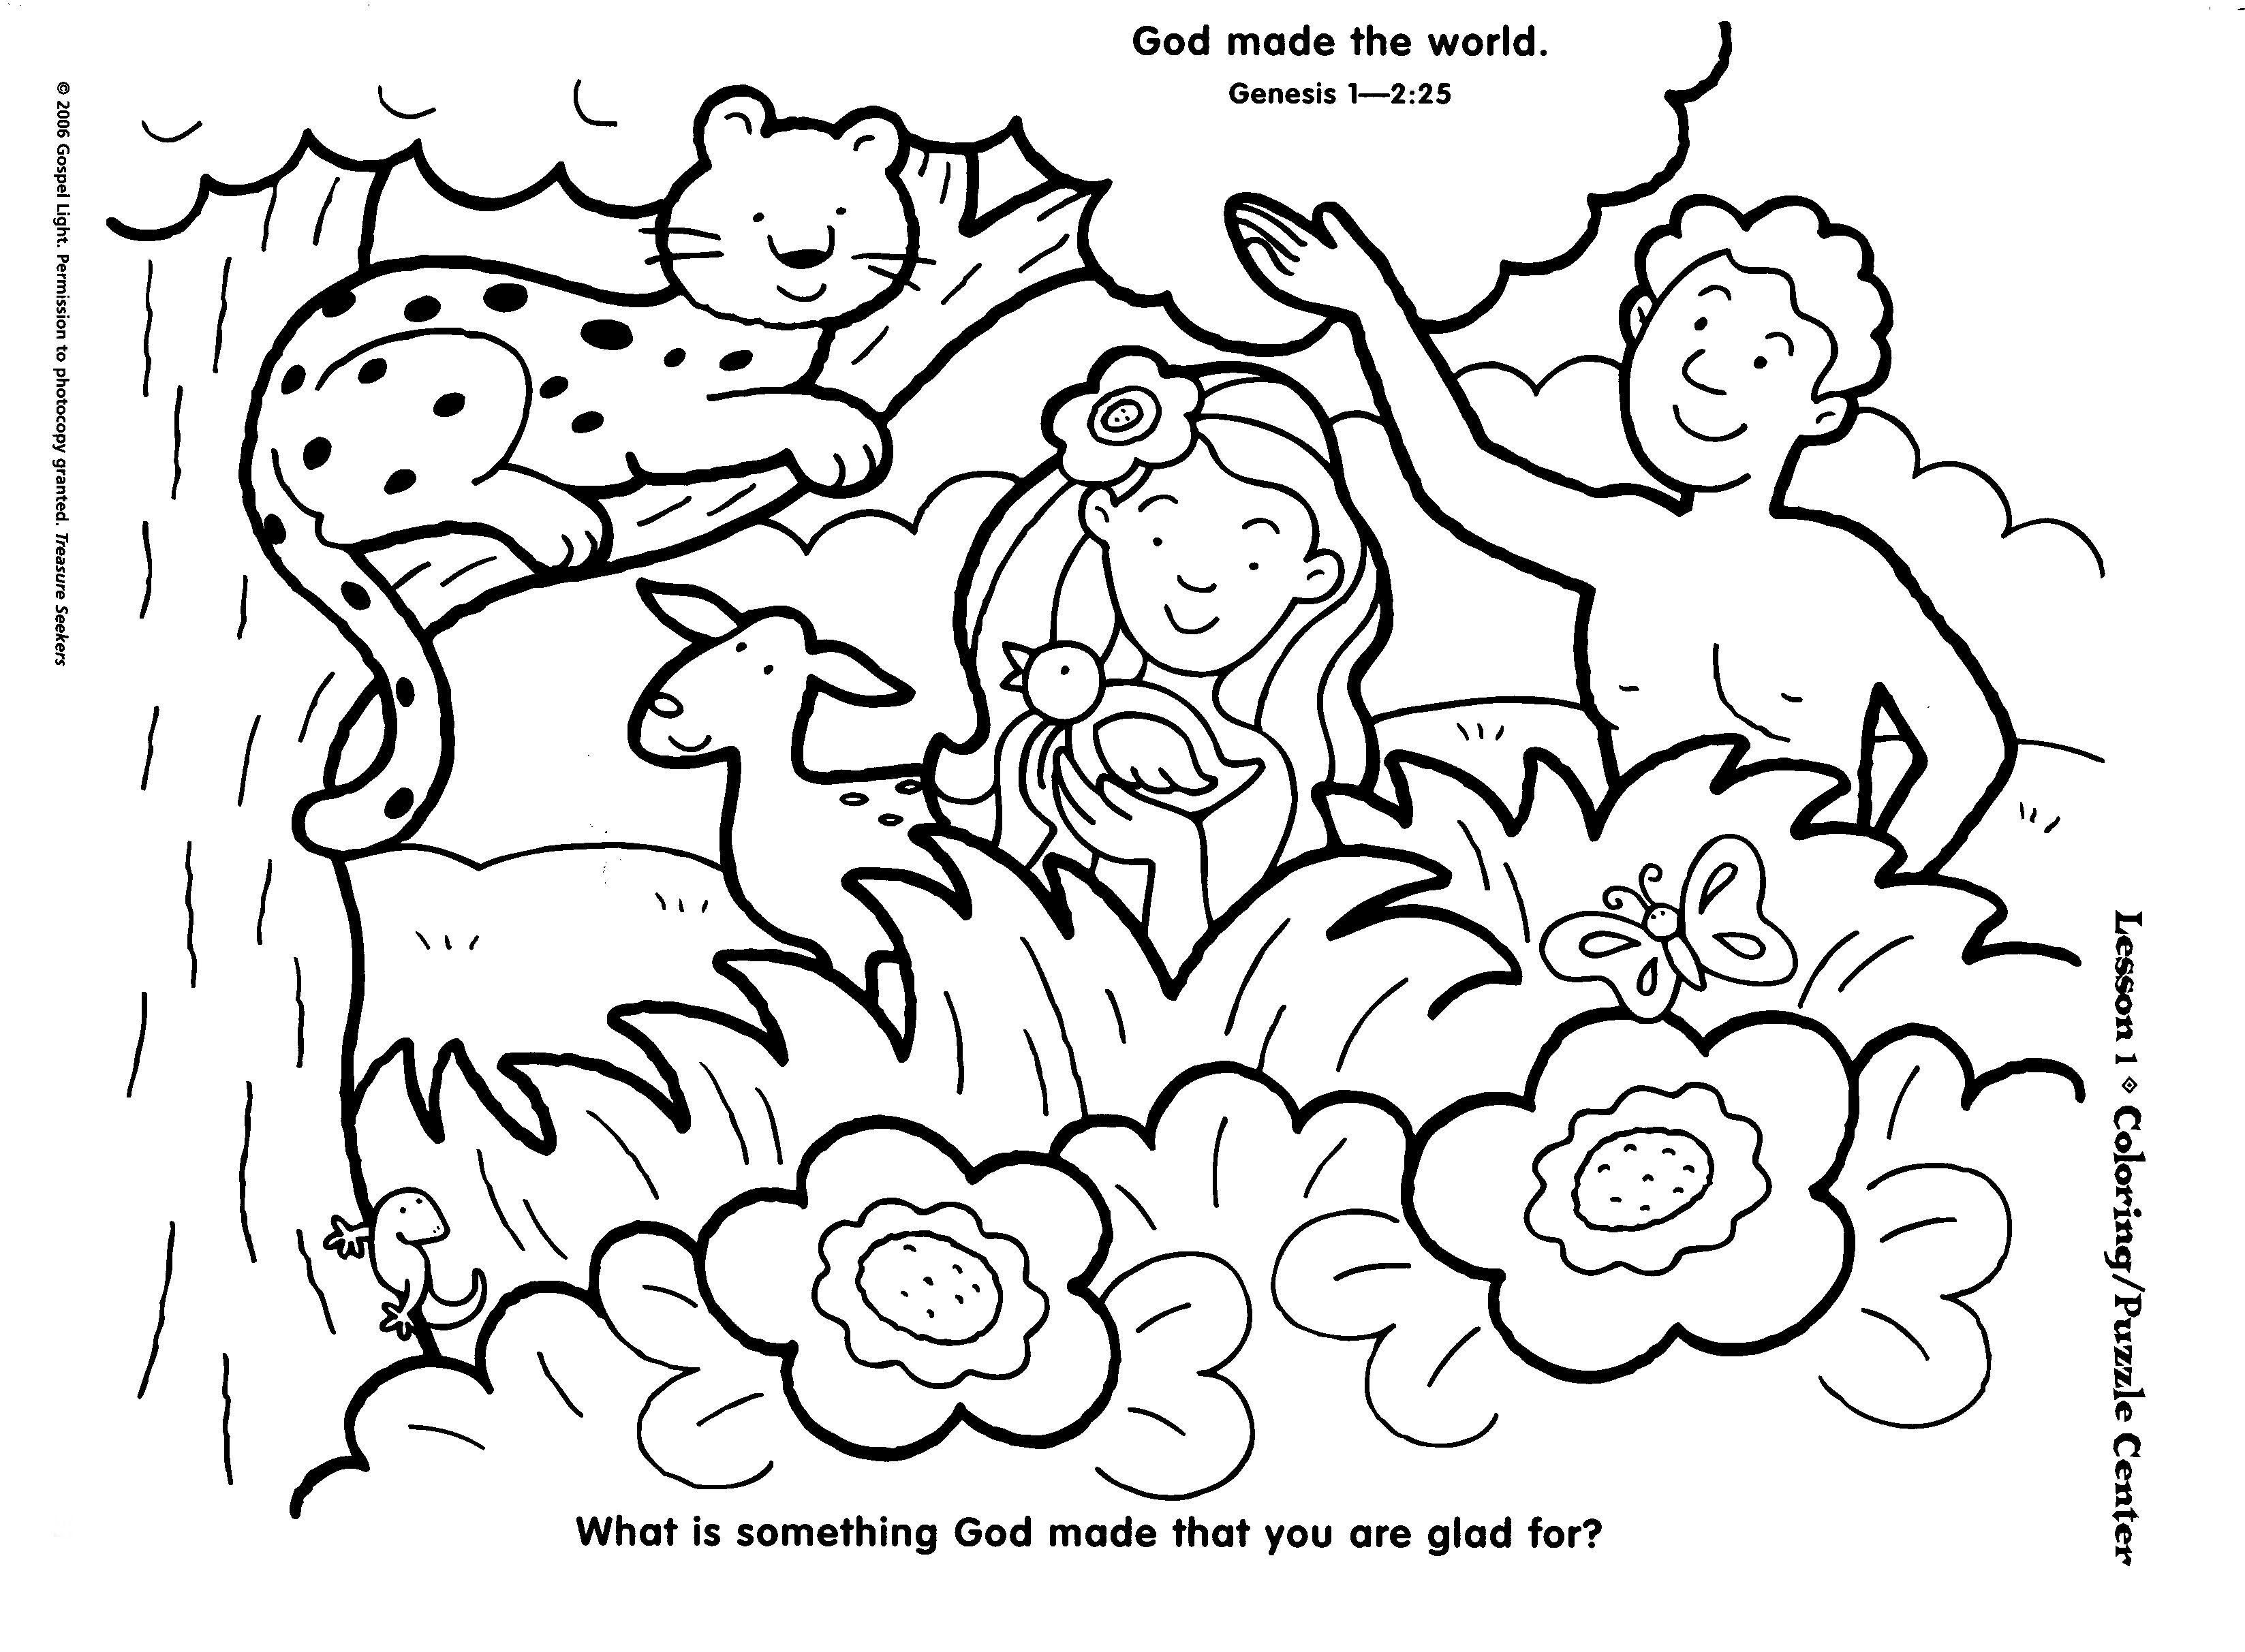 thanksgiving coloring pages religious creation - photo#18